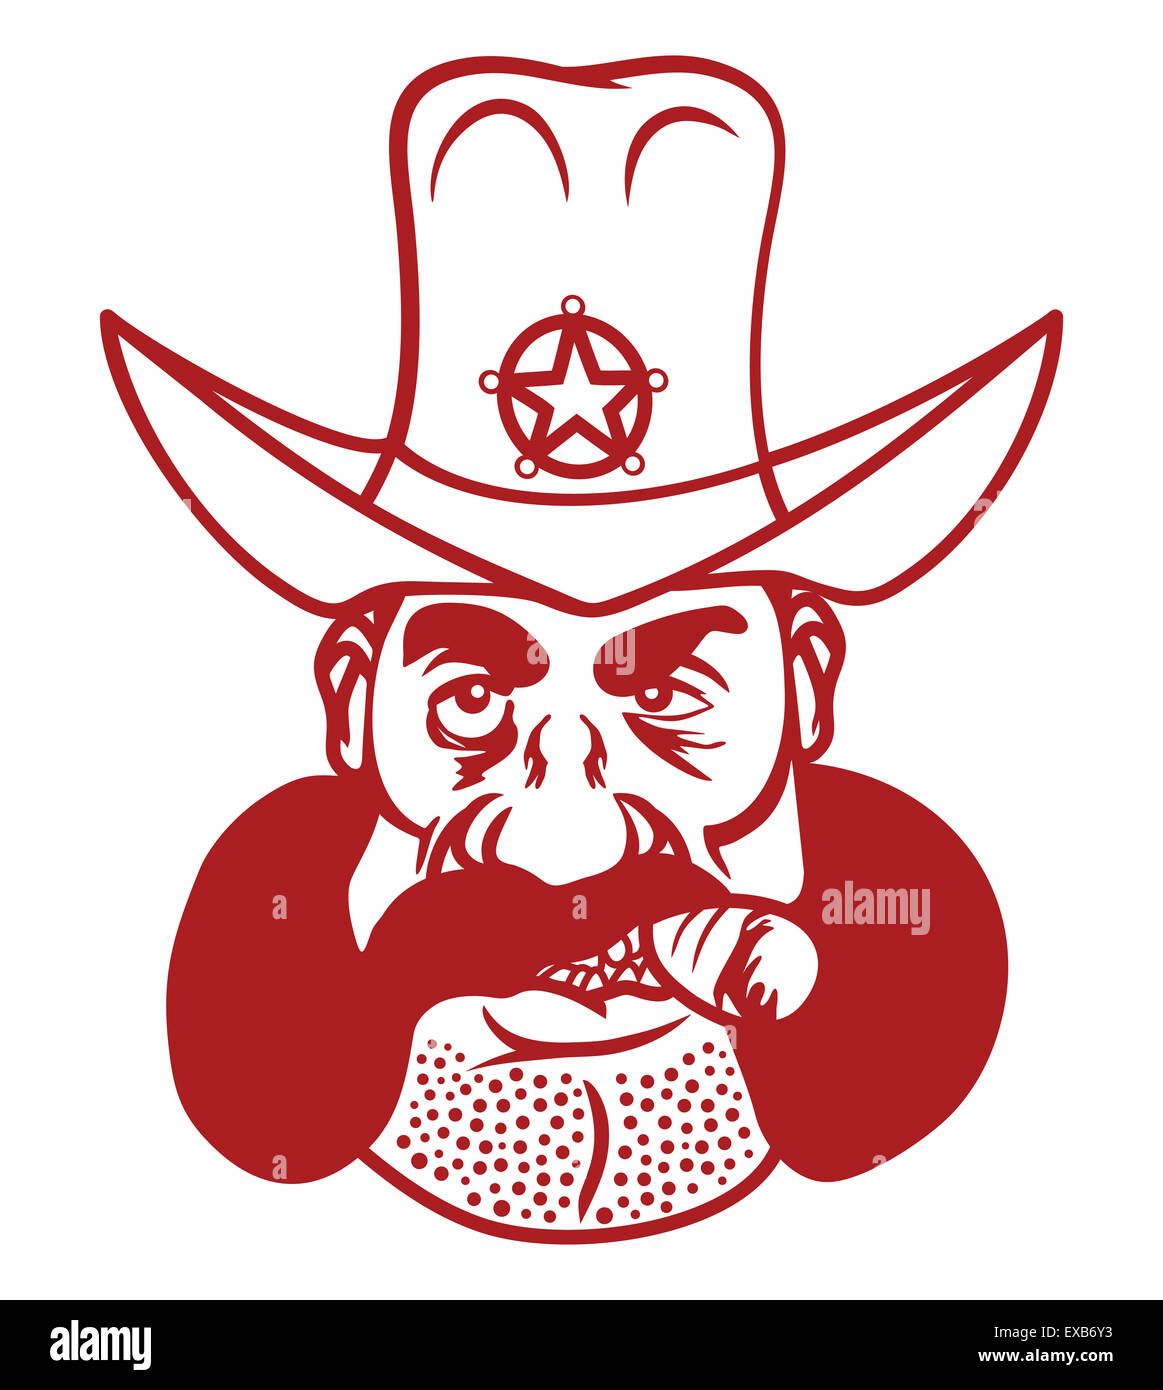 Vector illustration of the sheriff - Stock Image